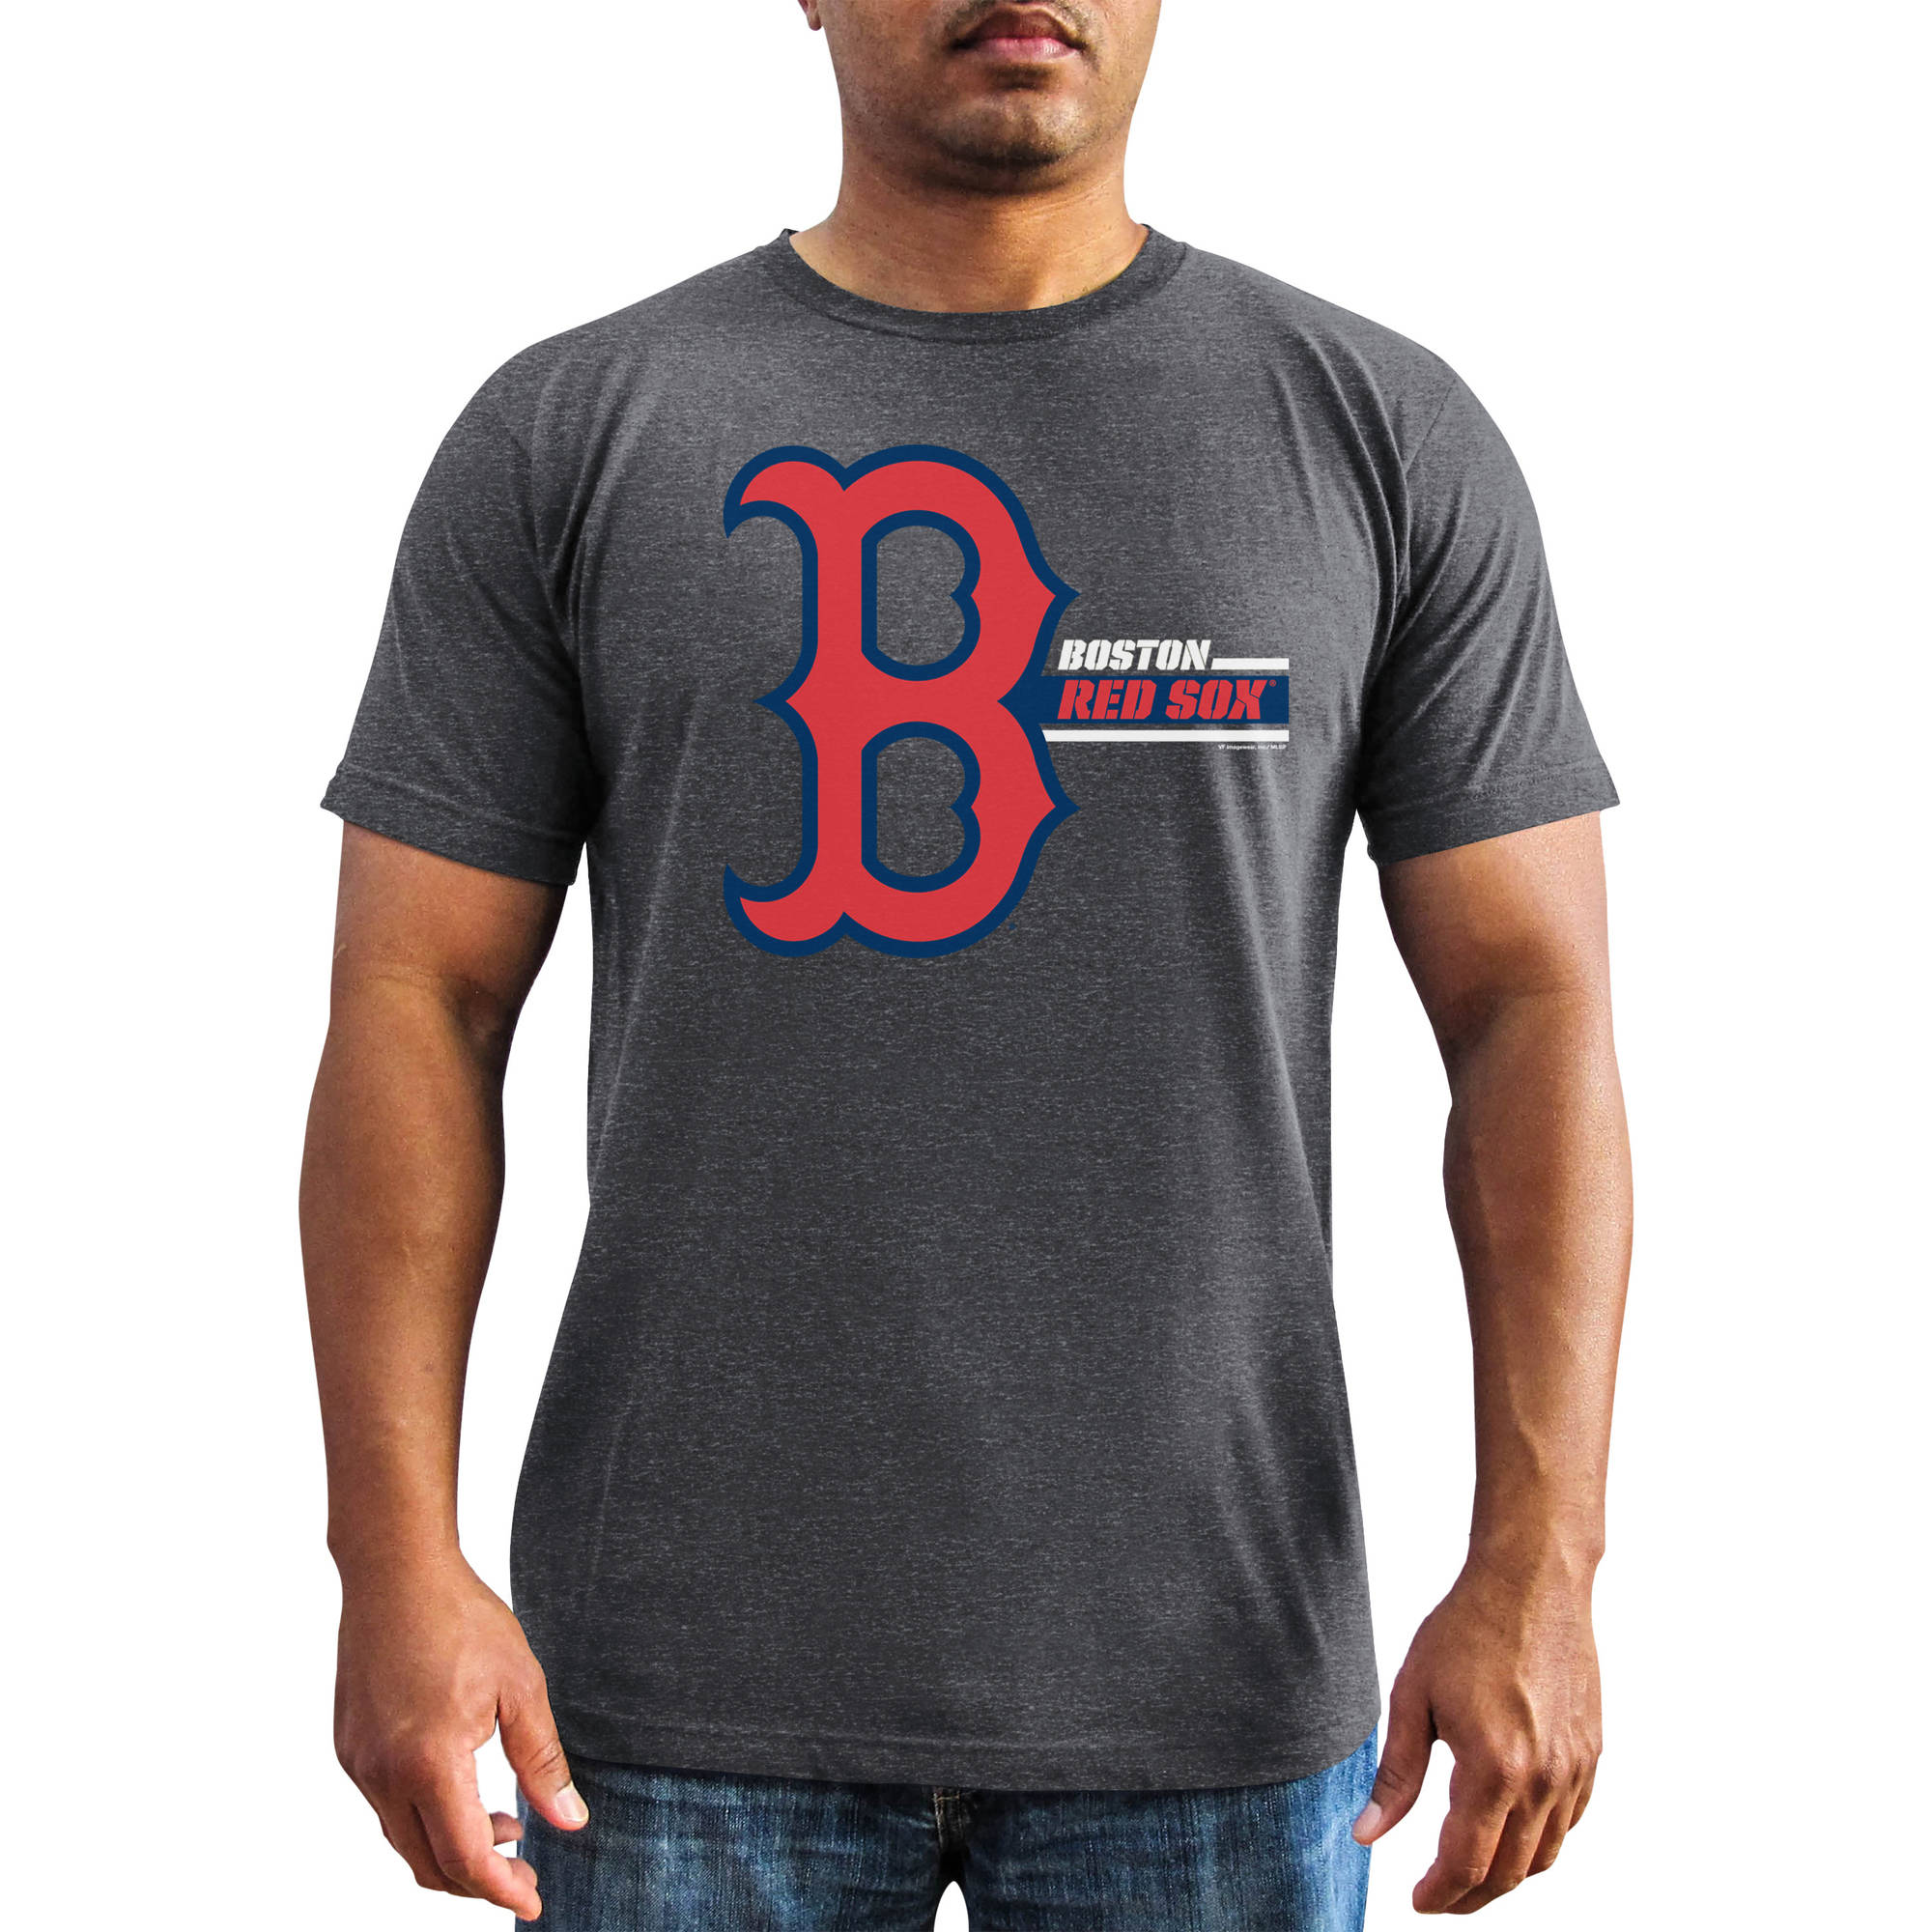 MLB - Big Mens Boston Red Sox Short Sleeve Team Tee